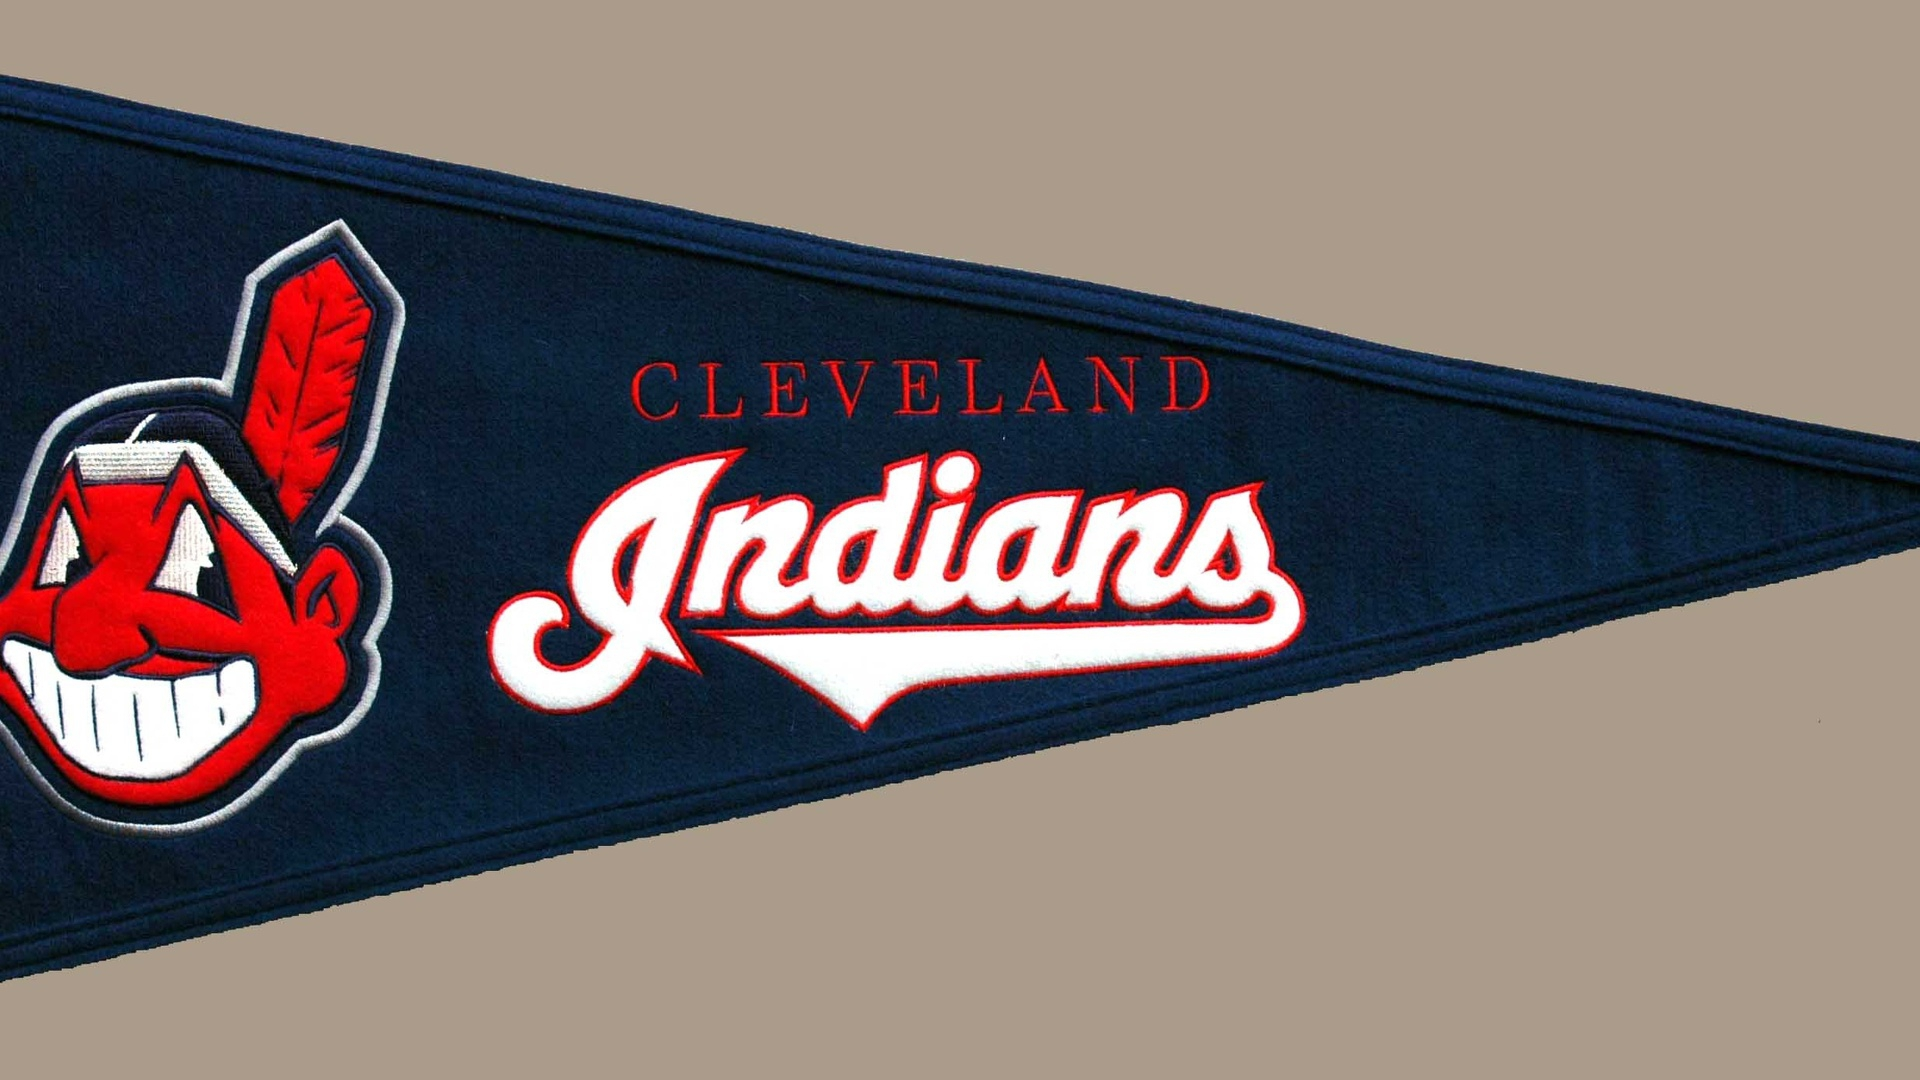 Cleveland Indians Wallpapers Hd